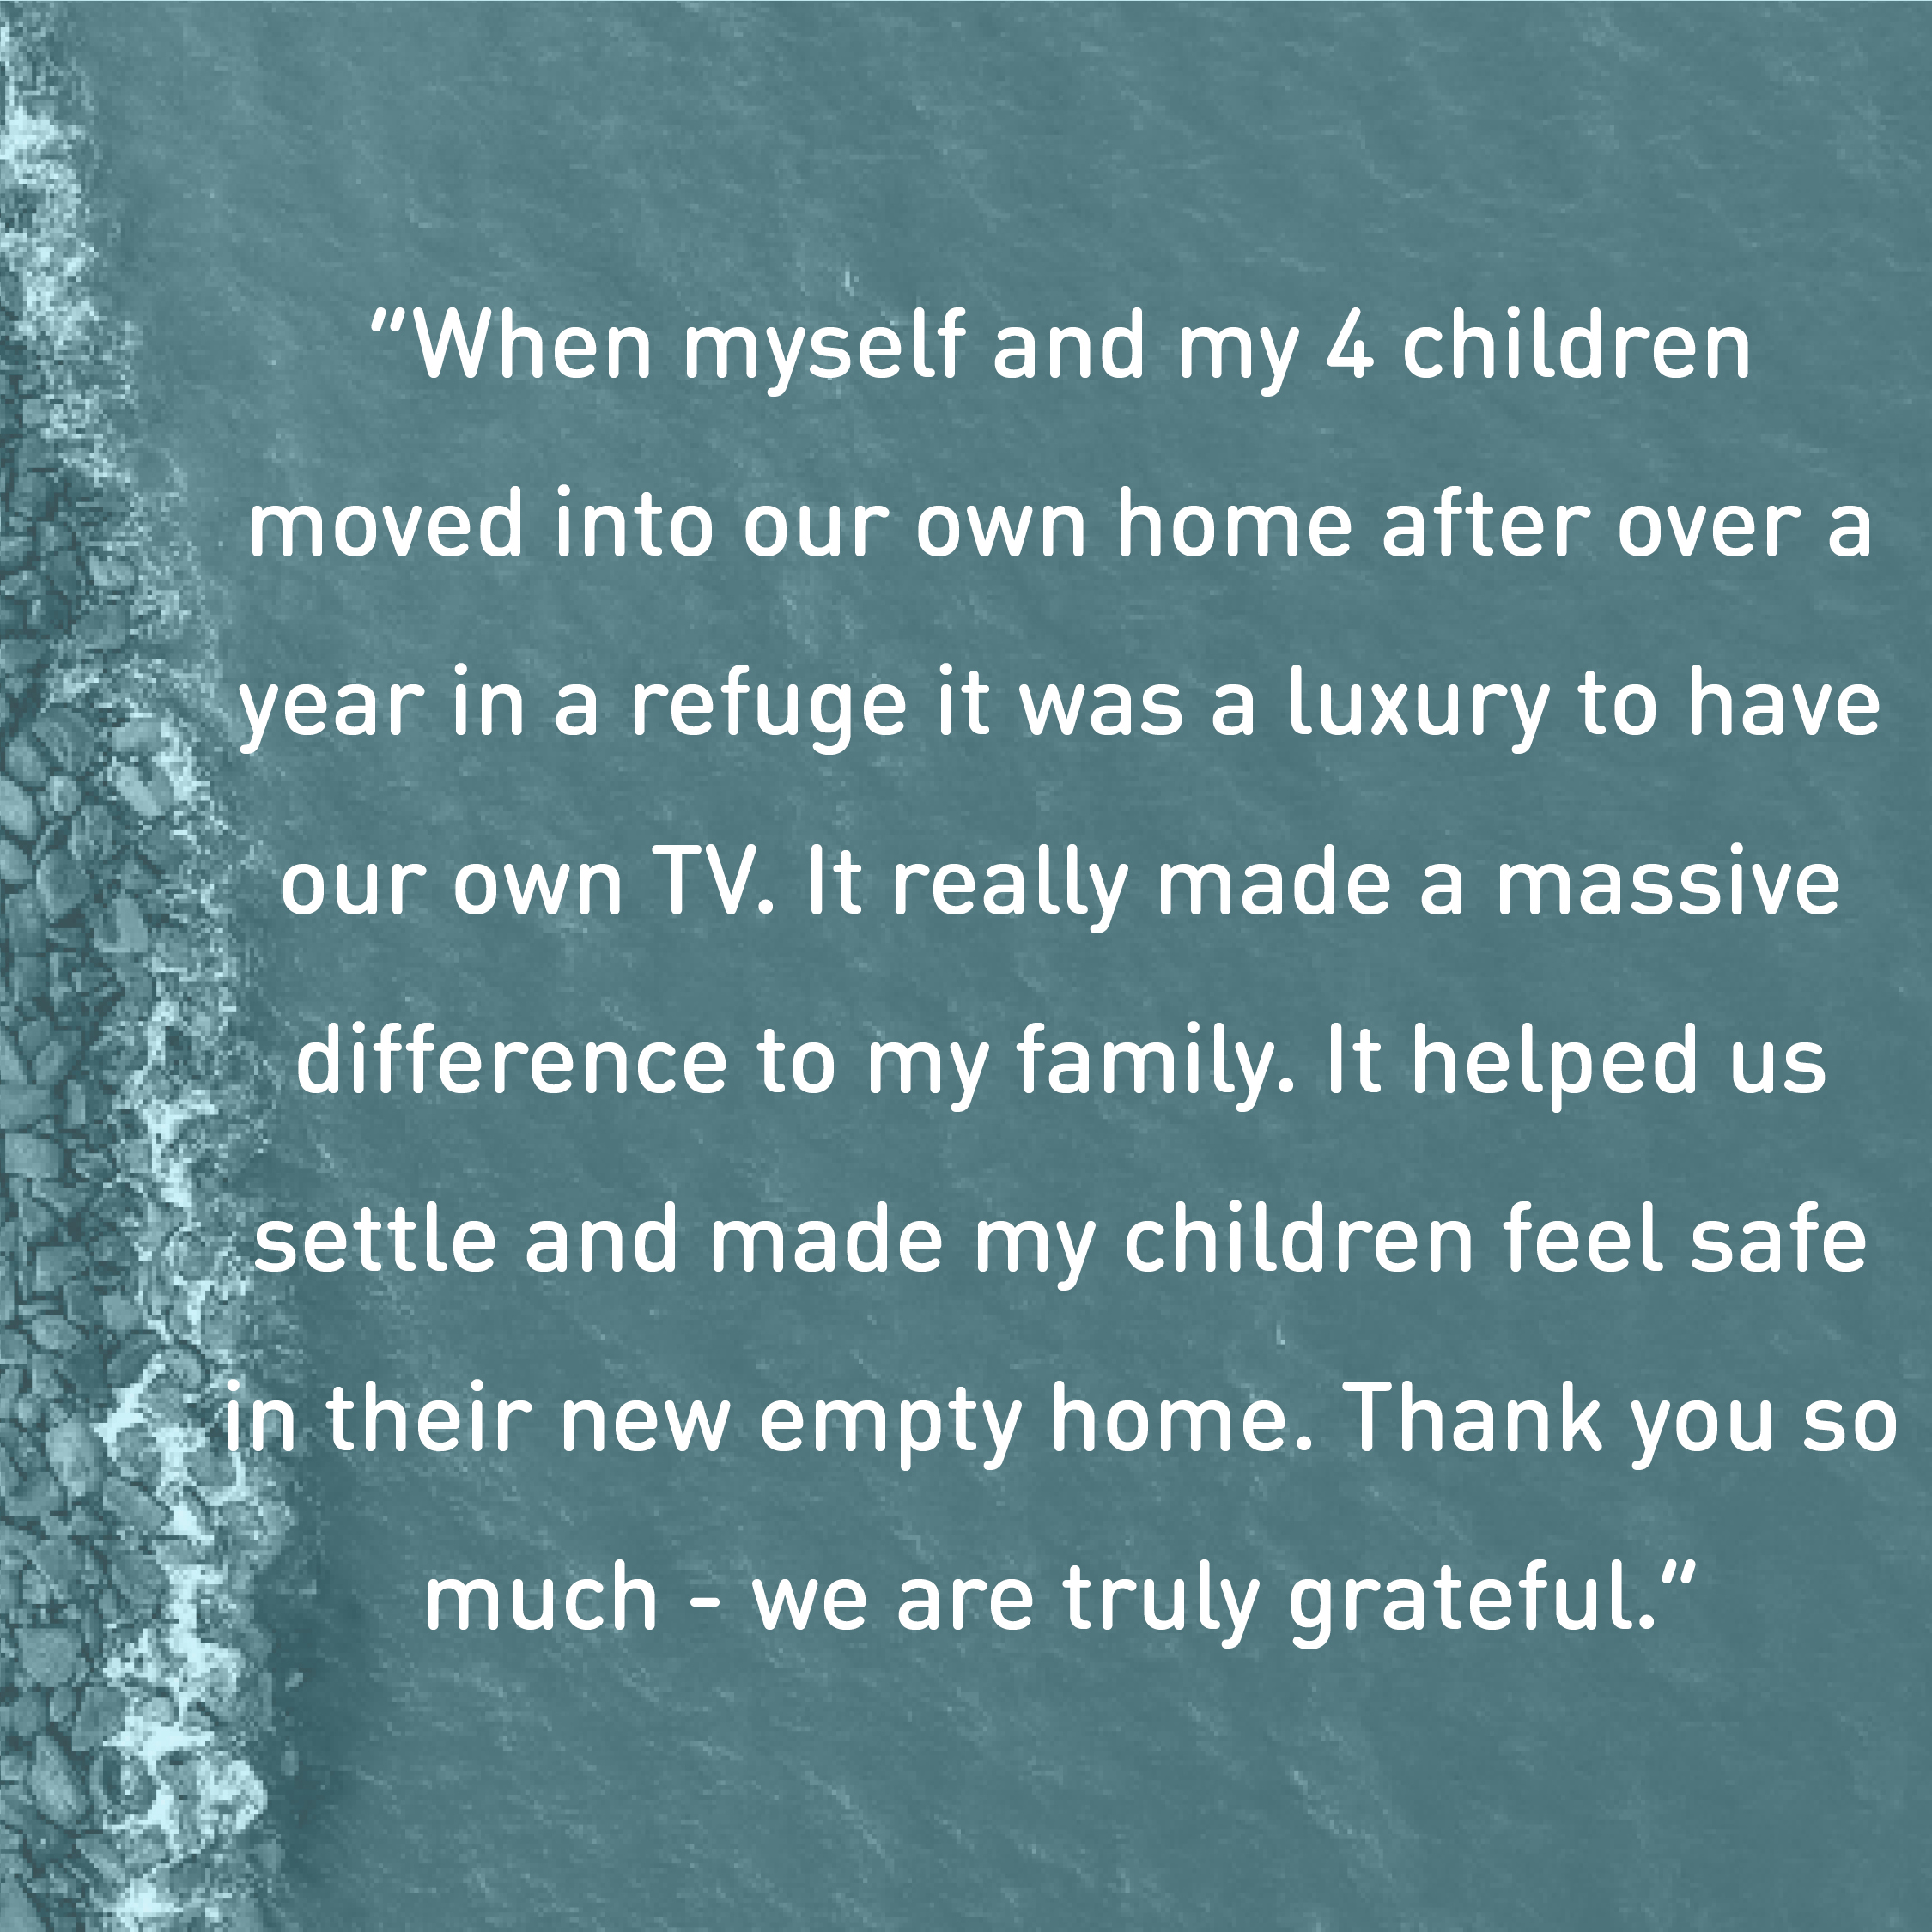 """""""When my 4 children and I moved into our own home after the refuge it was a luxury to have our own TV. It really made a massive difference to my family."""""""